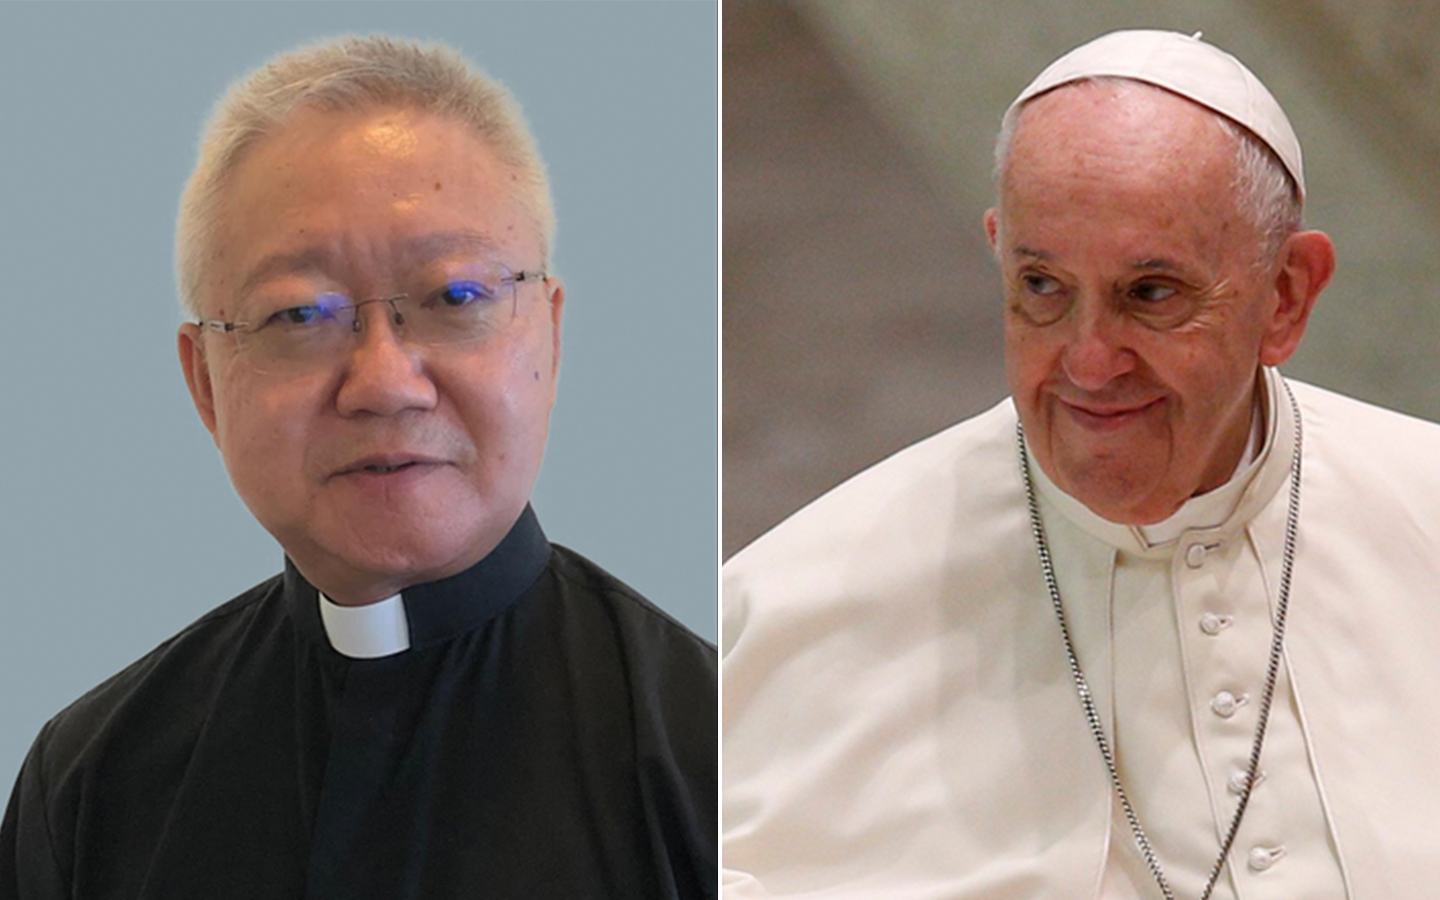 Arturo Sosa Father Stephen Tong and Pope Francis